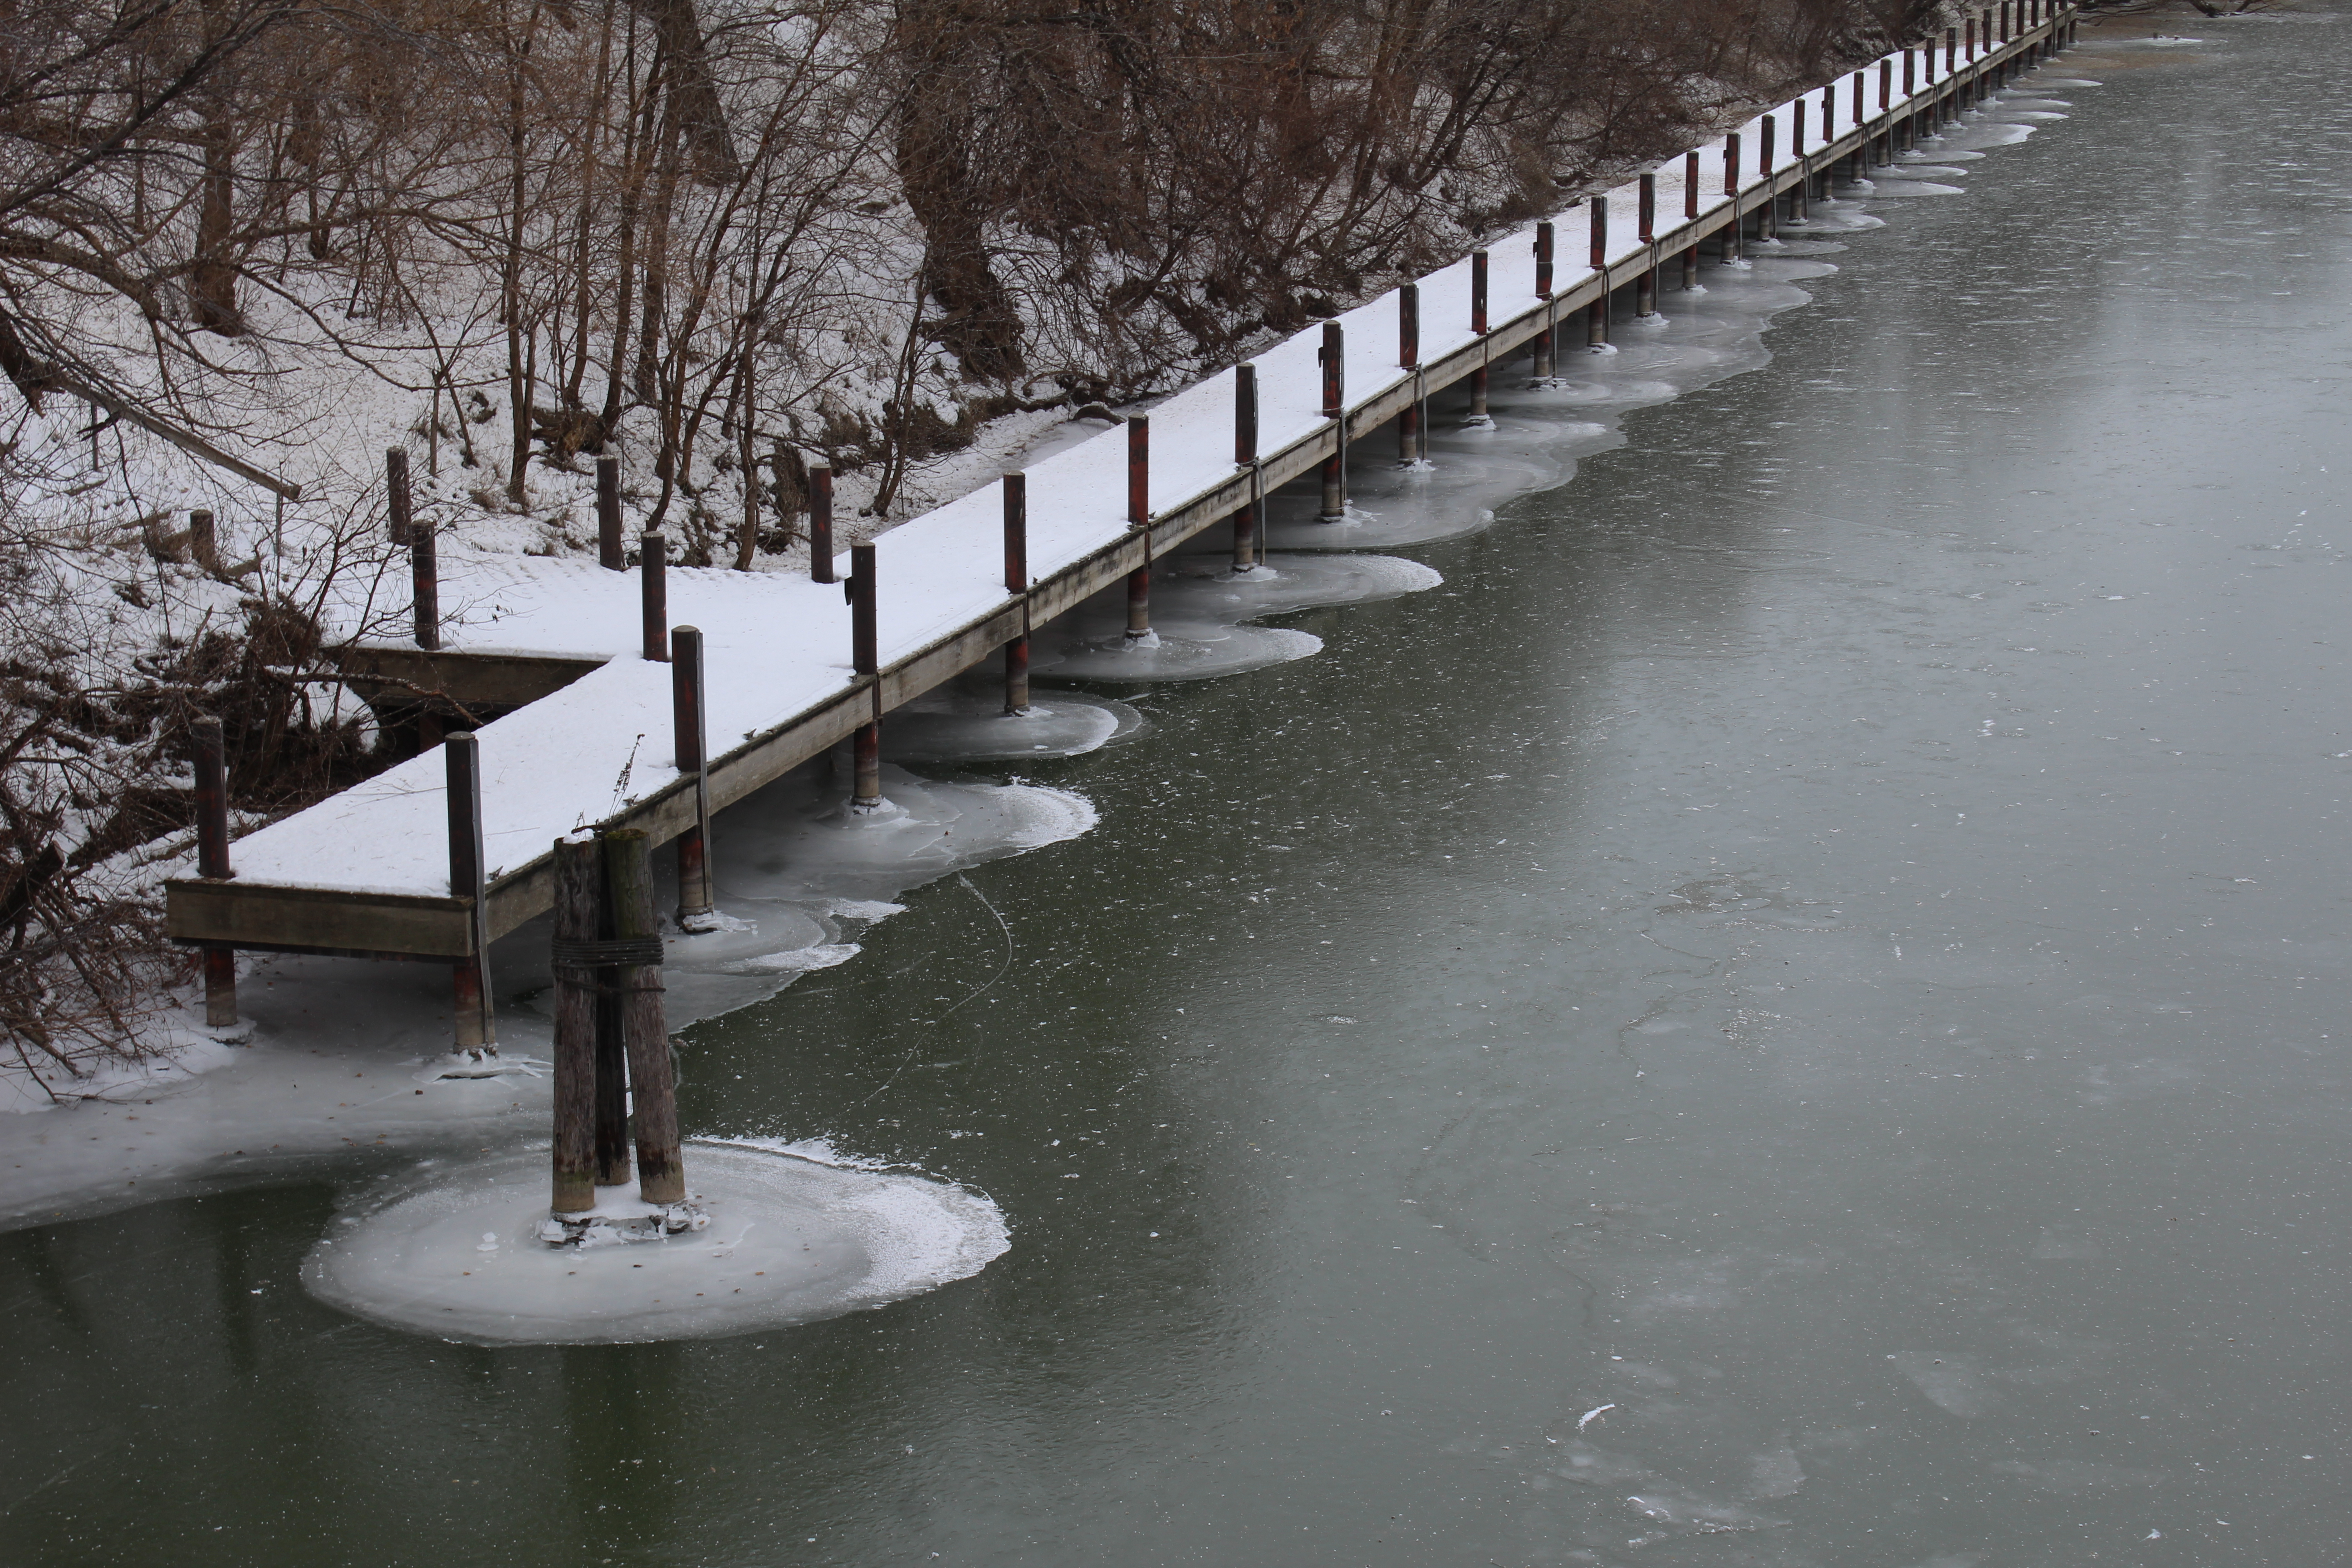 Thames River in Chatham. December 16, 2016. (Photo by Matt Weverink)